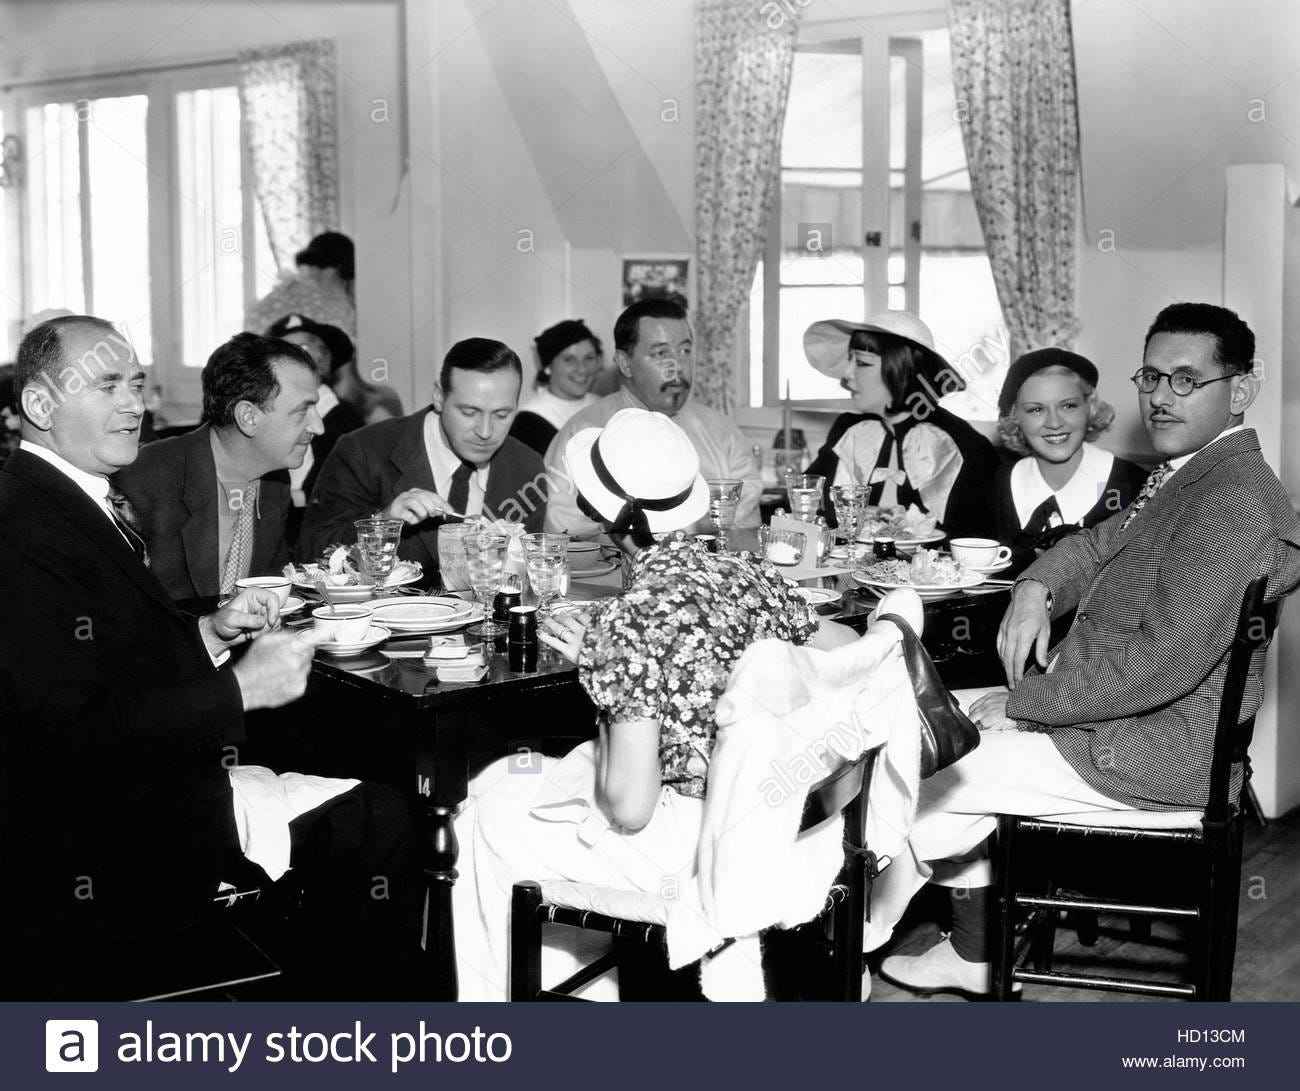 black and white photo of a group of film people at dinner, including Harry Lachman, Warner Oland, and Quon Tai Lachman